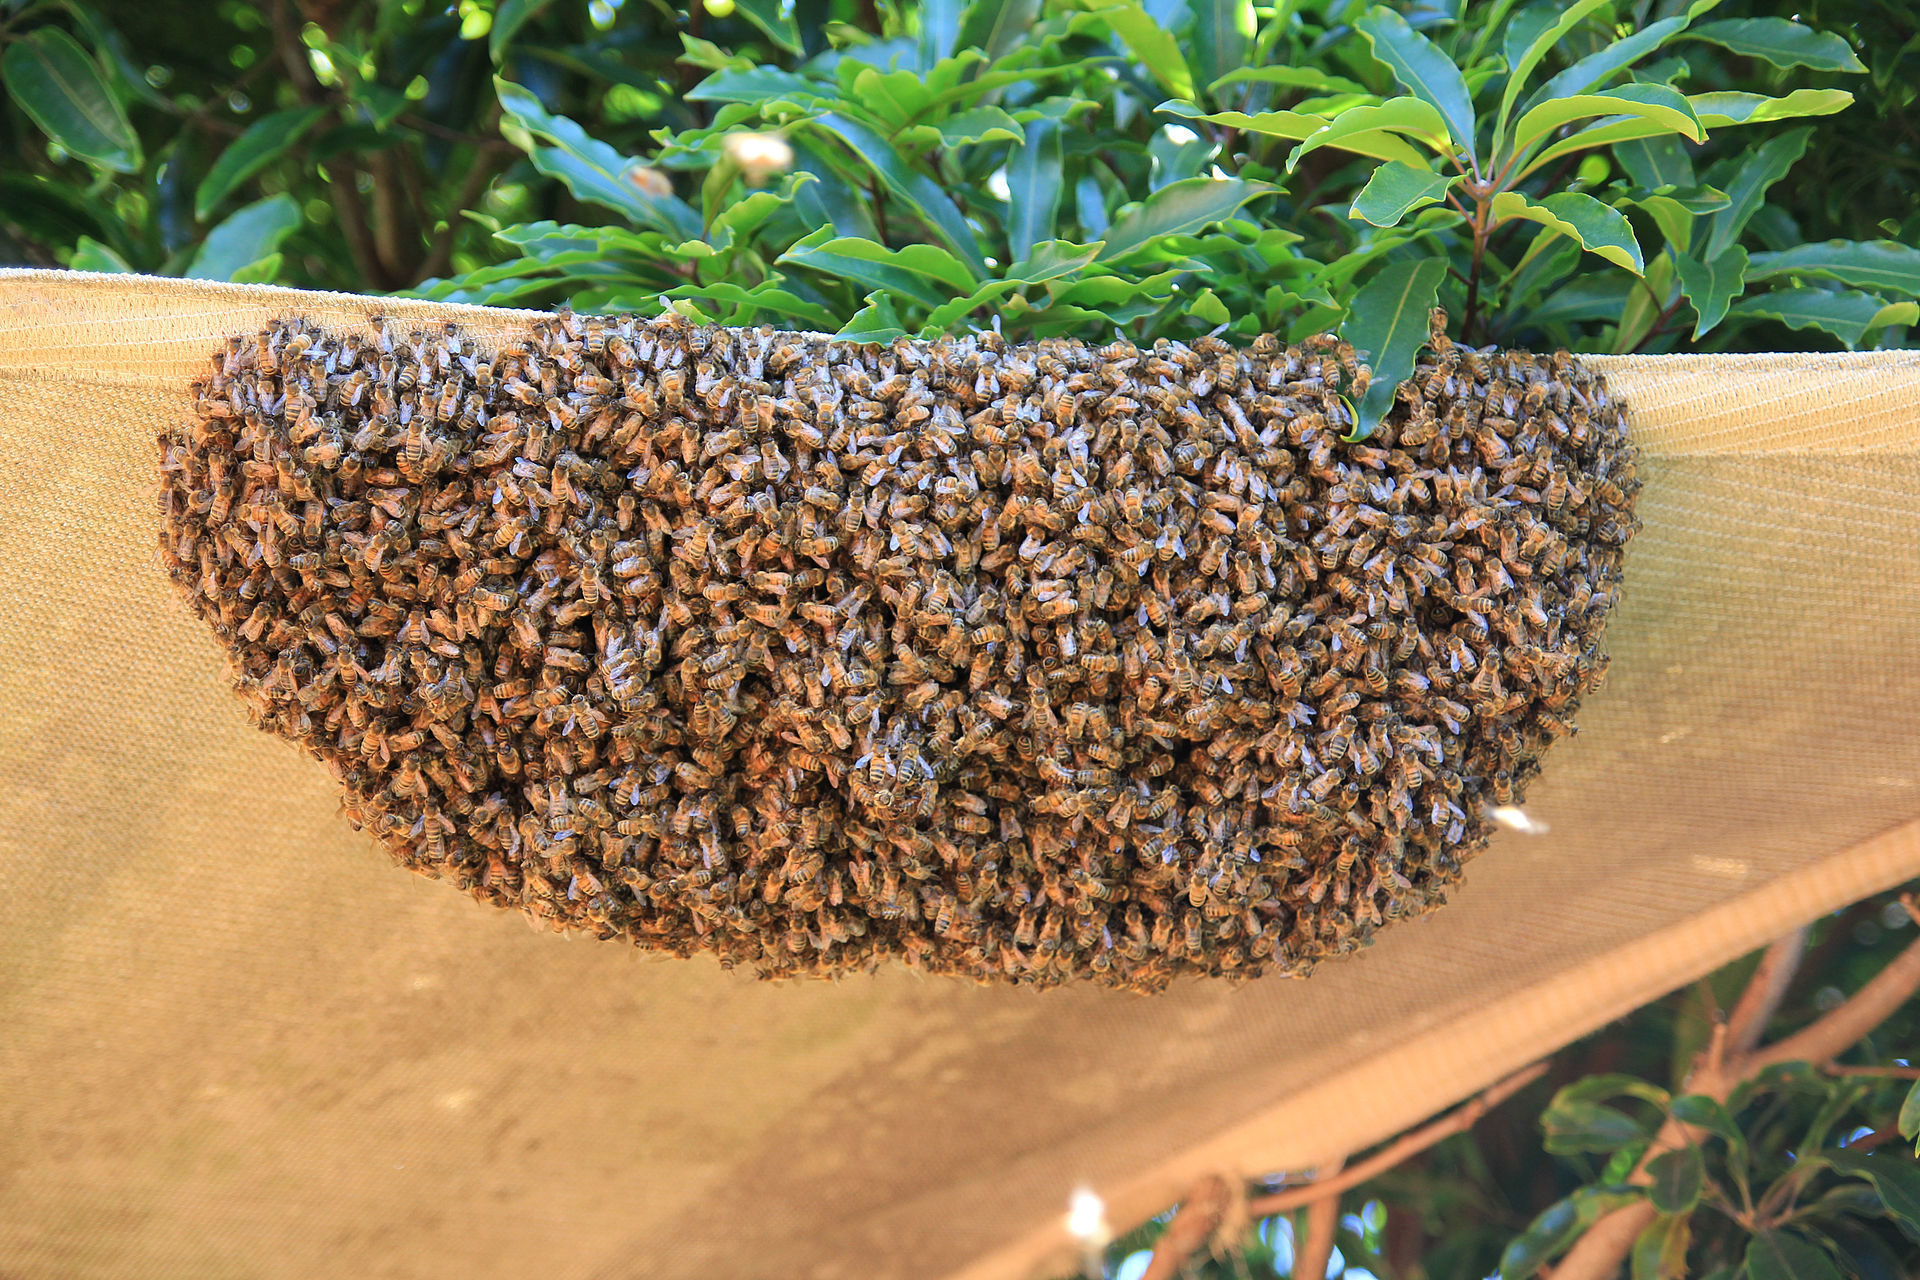 A swarm of bees in May  Is worth a load of hay;  A swarm of bees in June  Is worth a silver spoon;  A swarm of bees in July  Is not worth a fly.  -An Old English Ditty